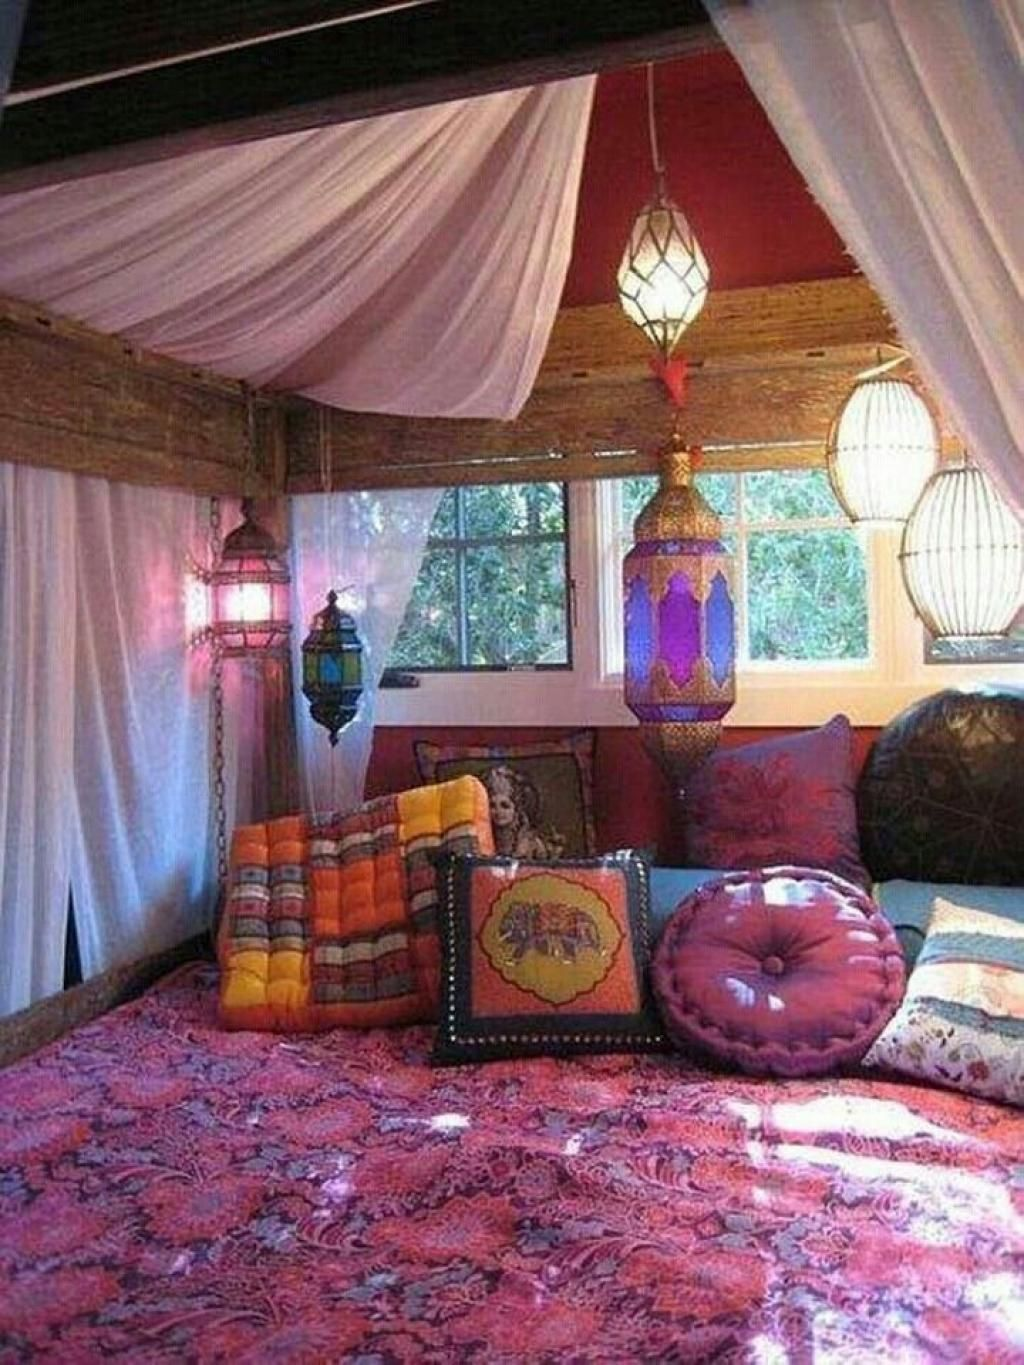 Clasic Romantic Interior Bedroom Design Ideas With Lighting Design And With  Hanging Lamp Meditation Room Ideas